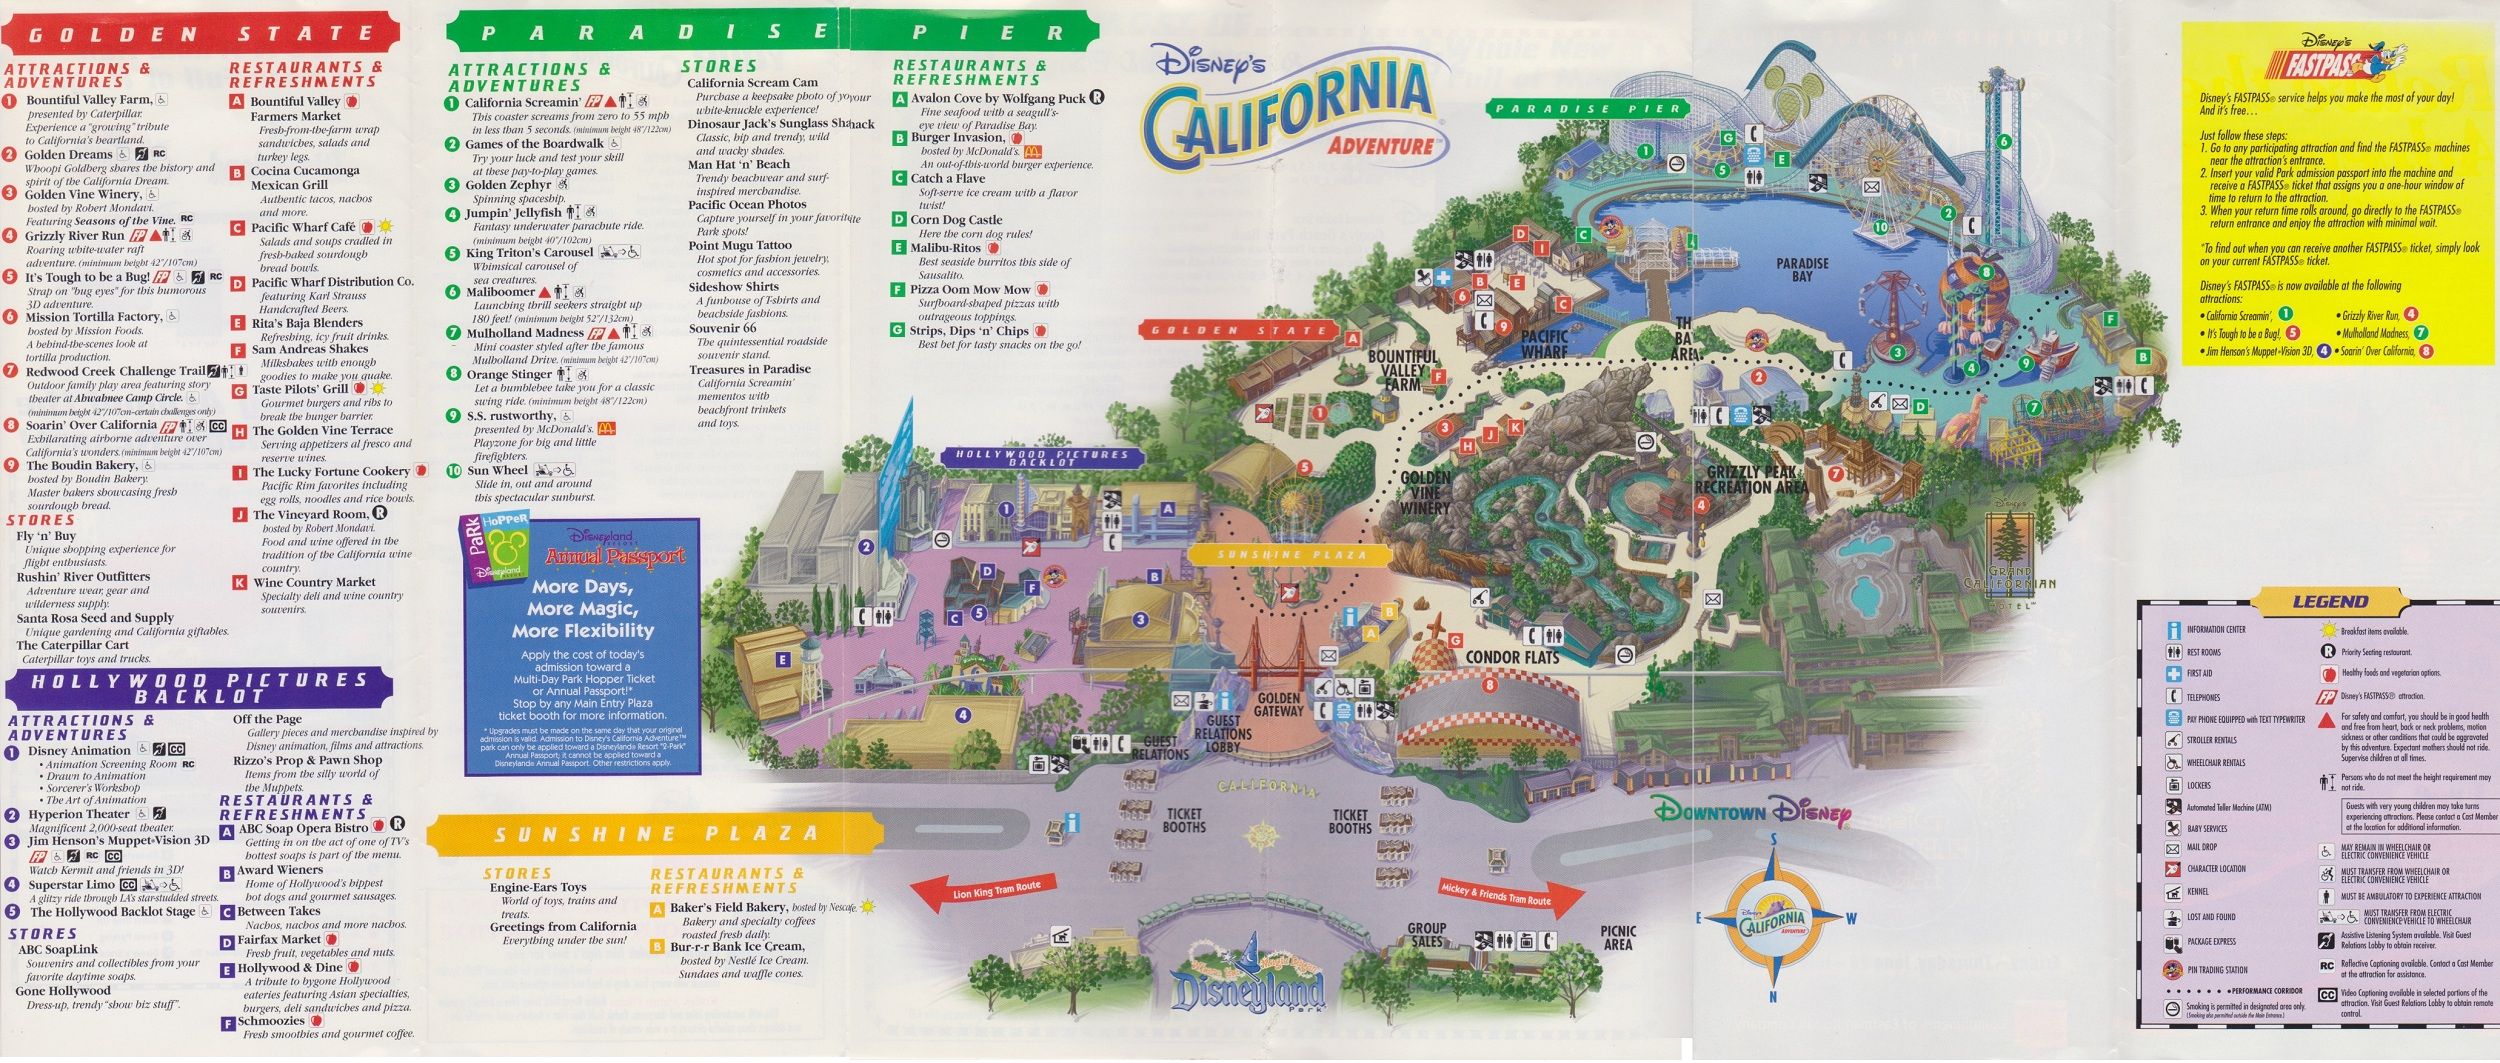 Map Of California Adventure Disney Ephemera: 2001 Disney's California Adventure Guide Map